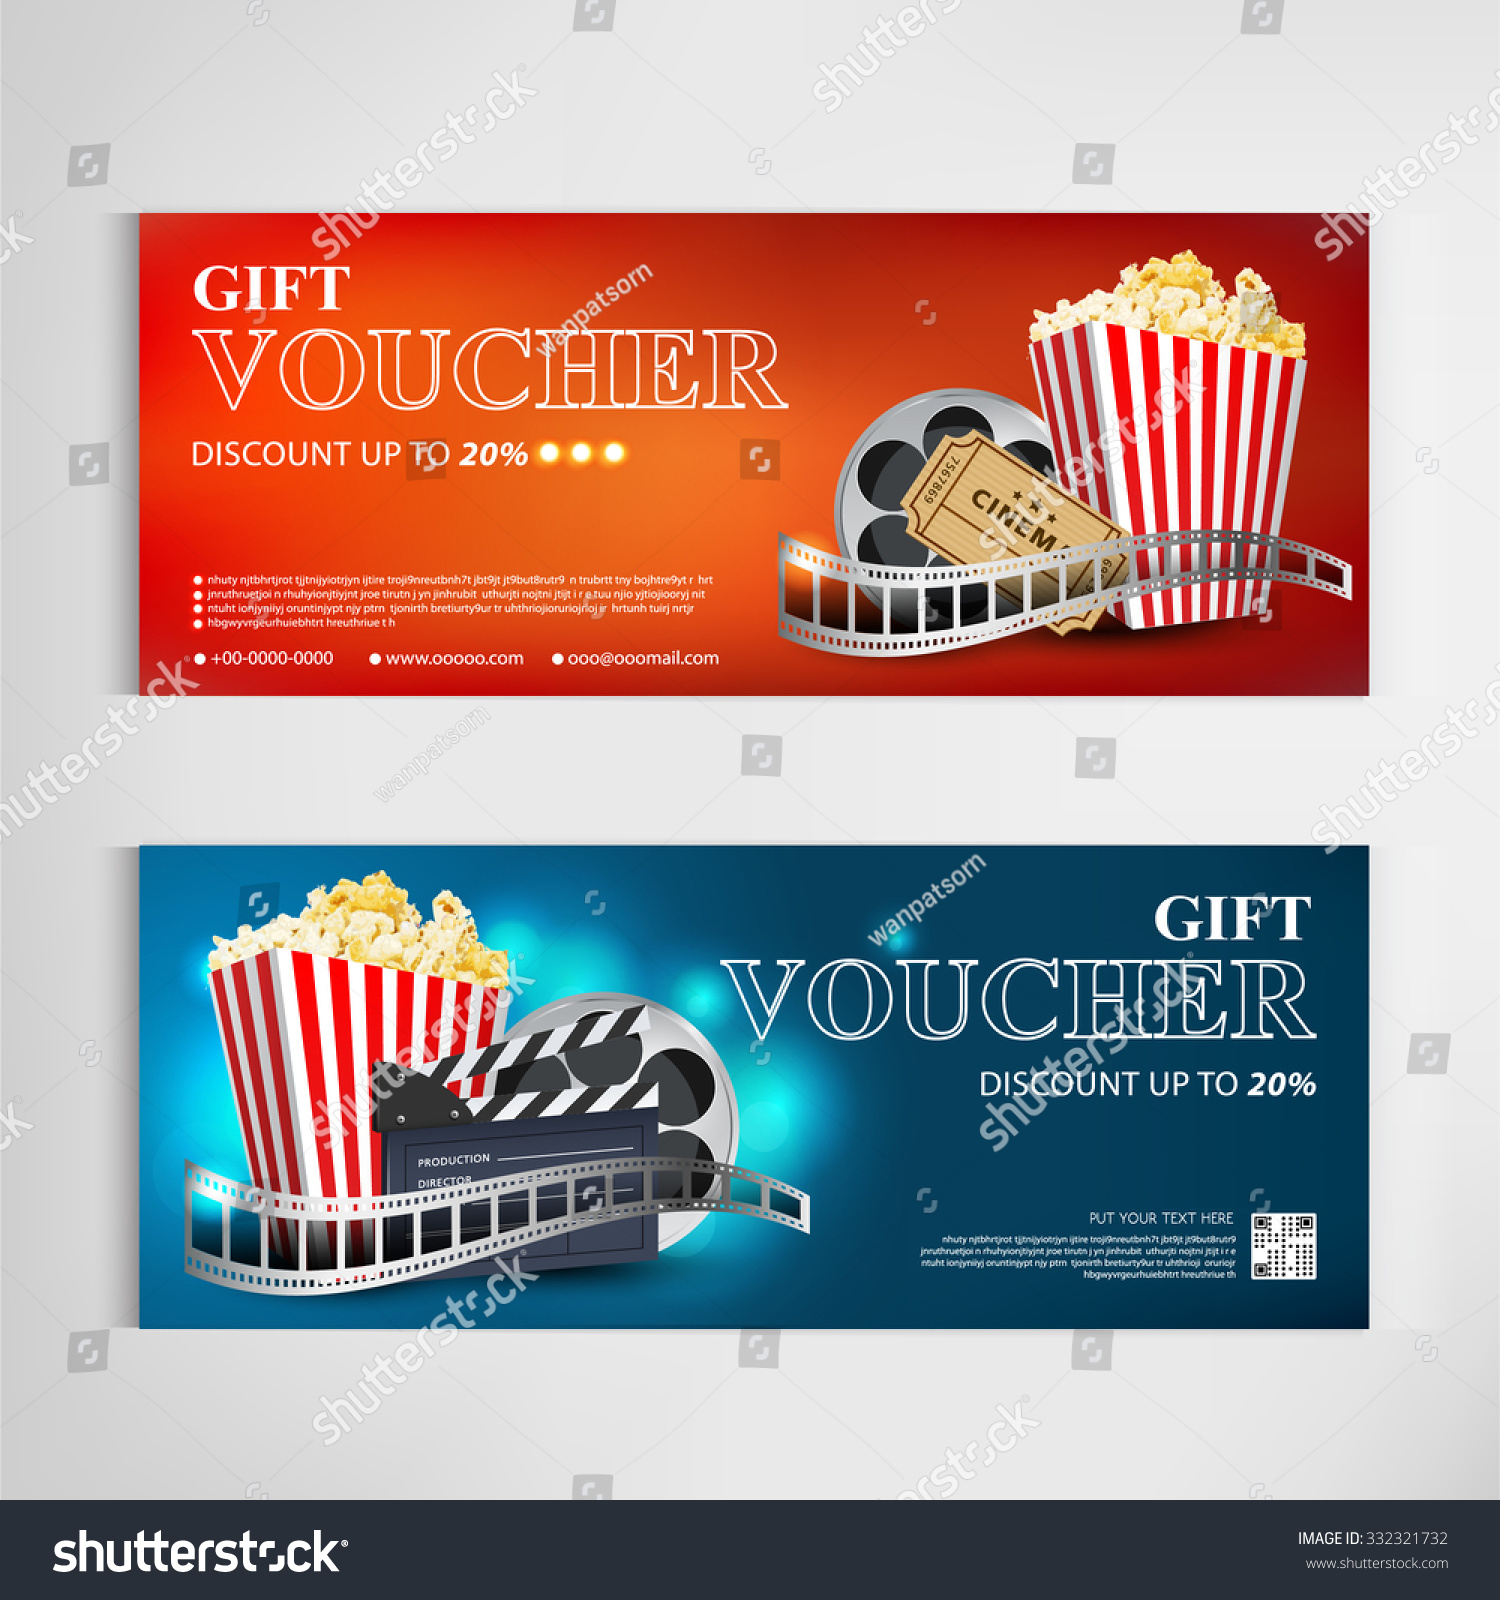 Movie Offer Coupons Stock Vector Gift Voucher Movie Template Modern Pattern